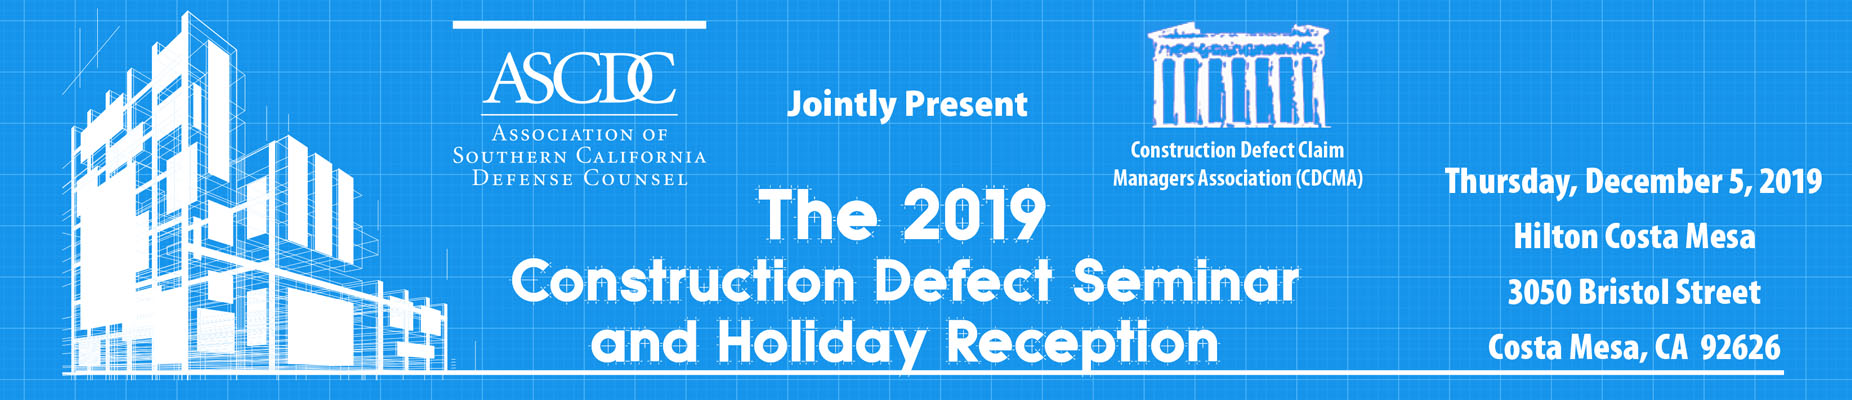 ASCDC 2019 Construction Defect Seminar & Holiday Reception